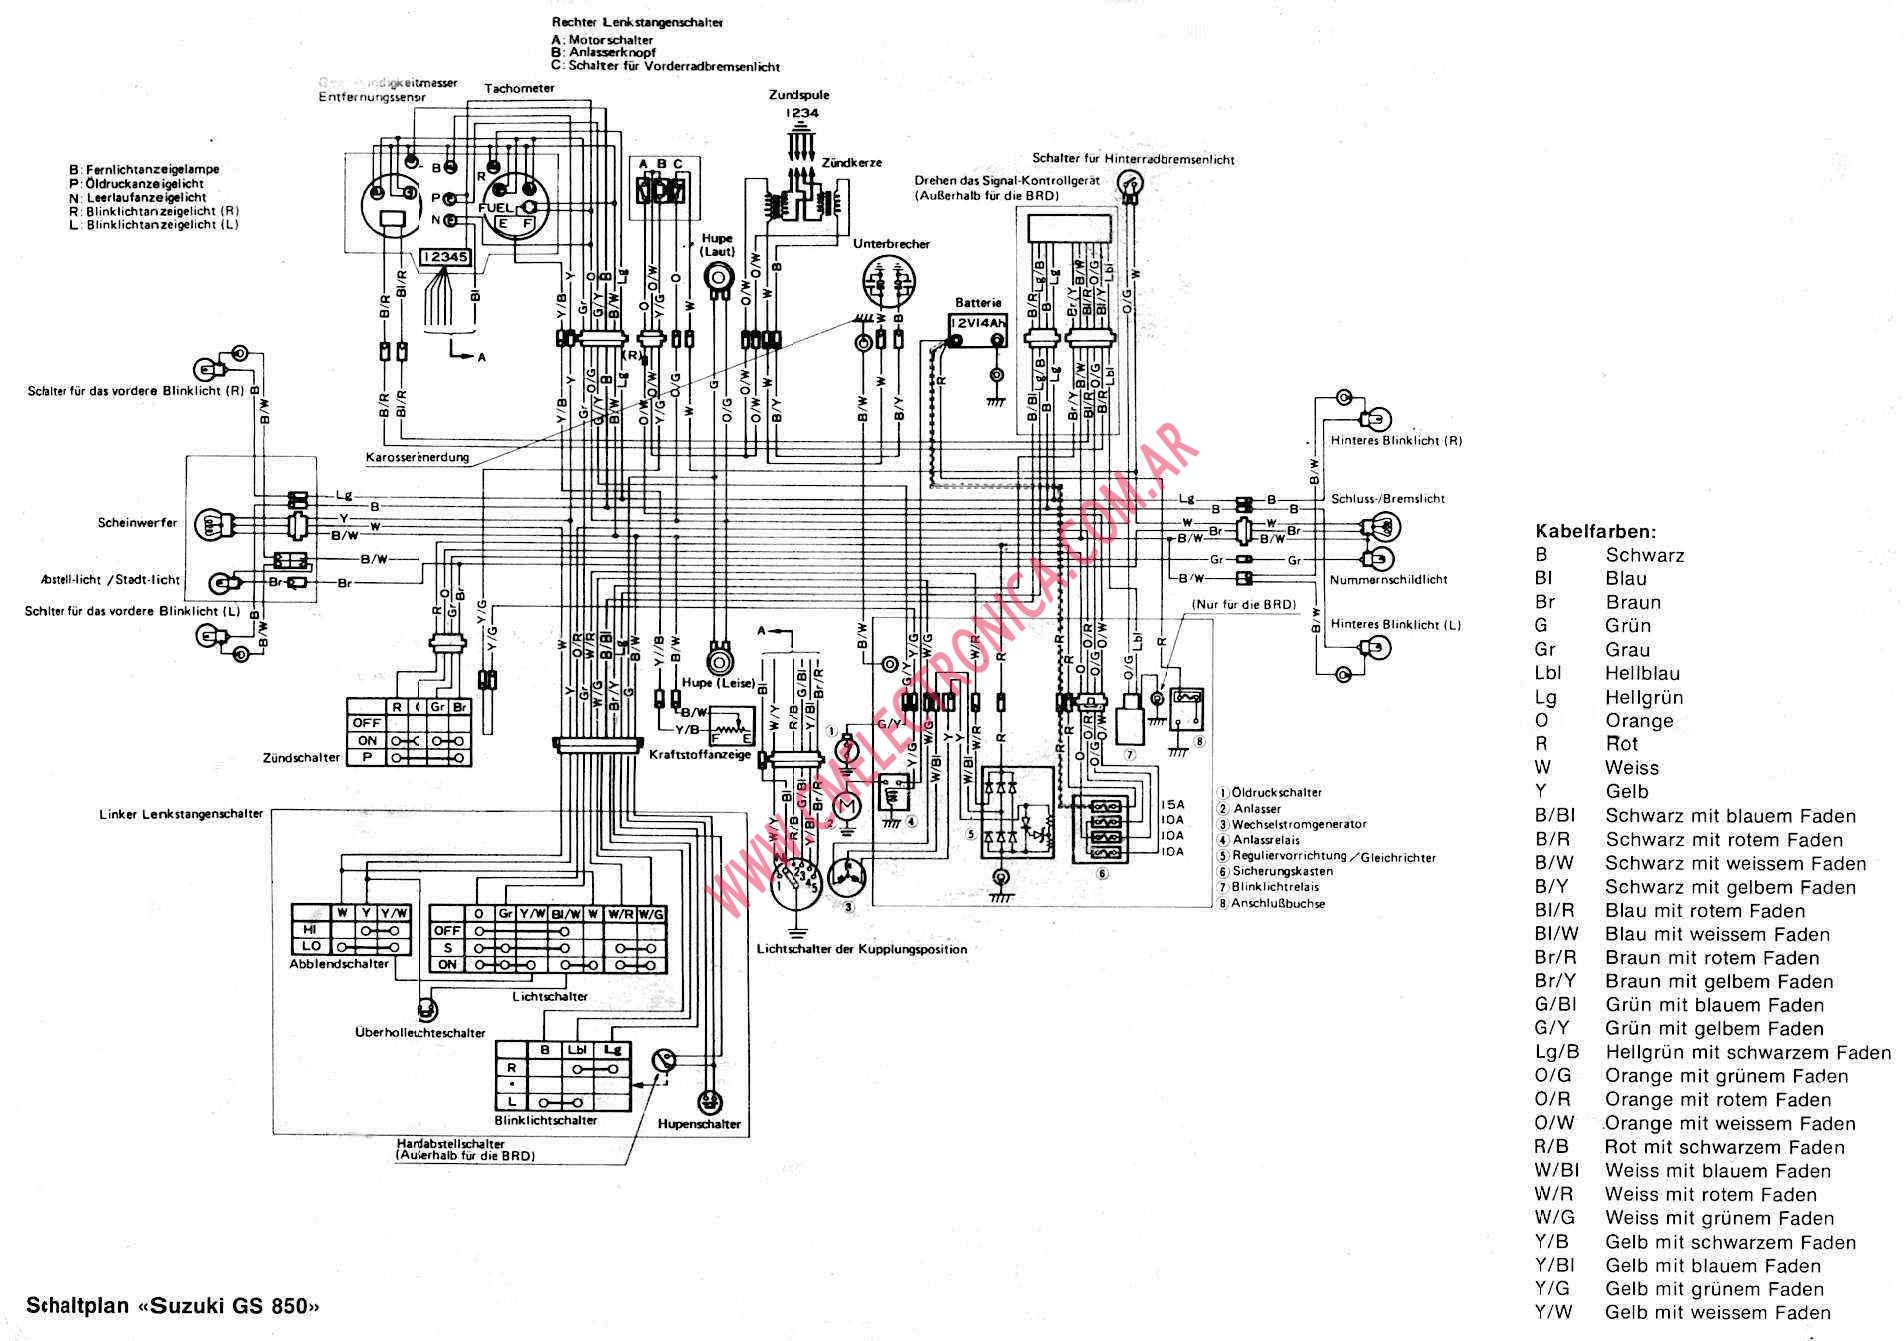 hight resolution of gs 850 wiring diagram 21 wiring diagram images wiring 1982 suzuki gs850 wiring 1982 suzuki gs850 wiring